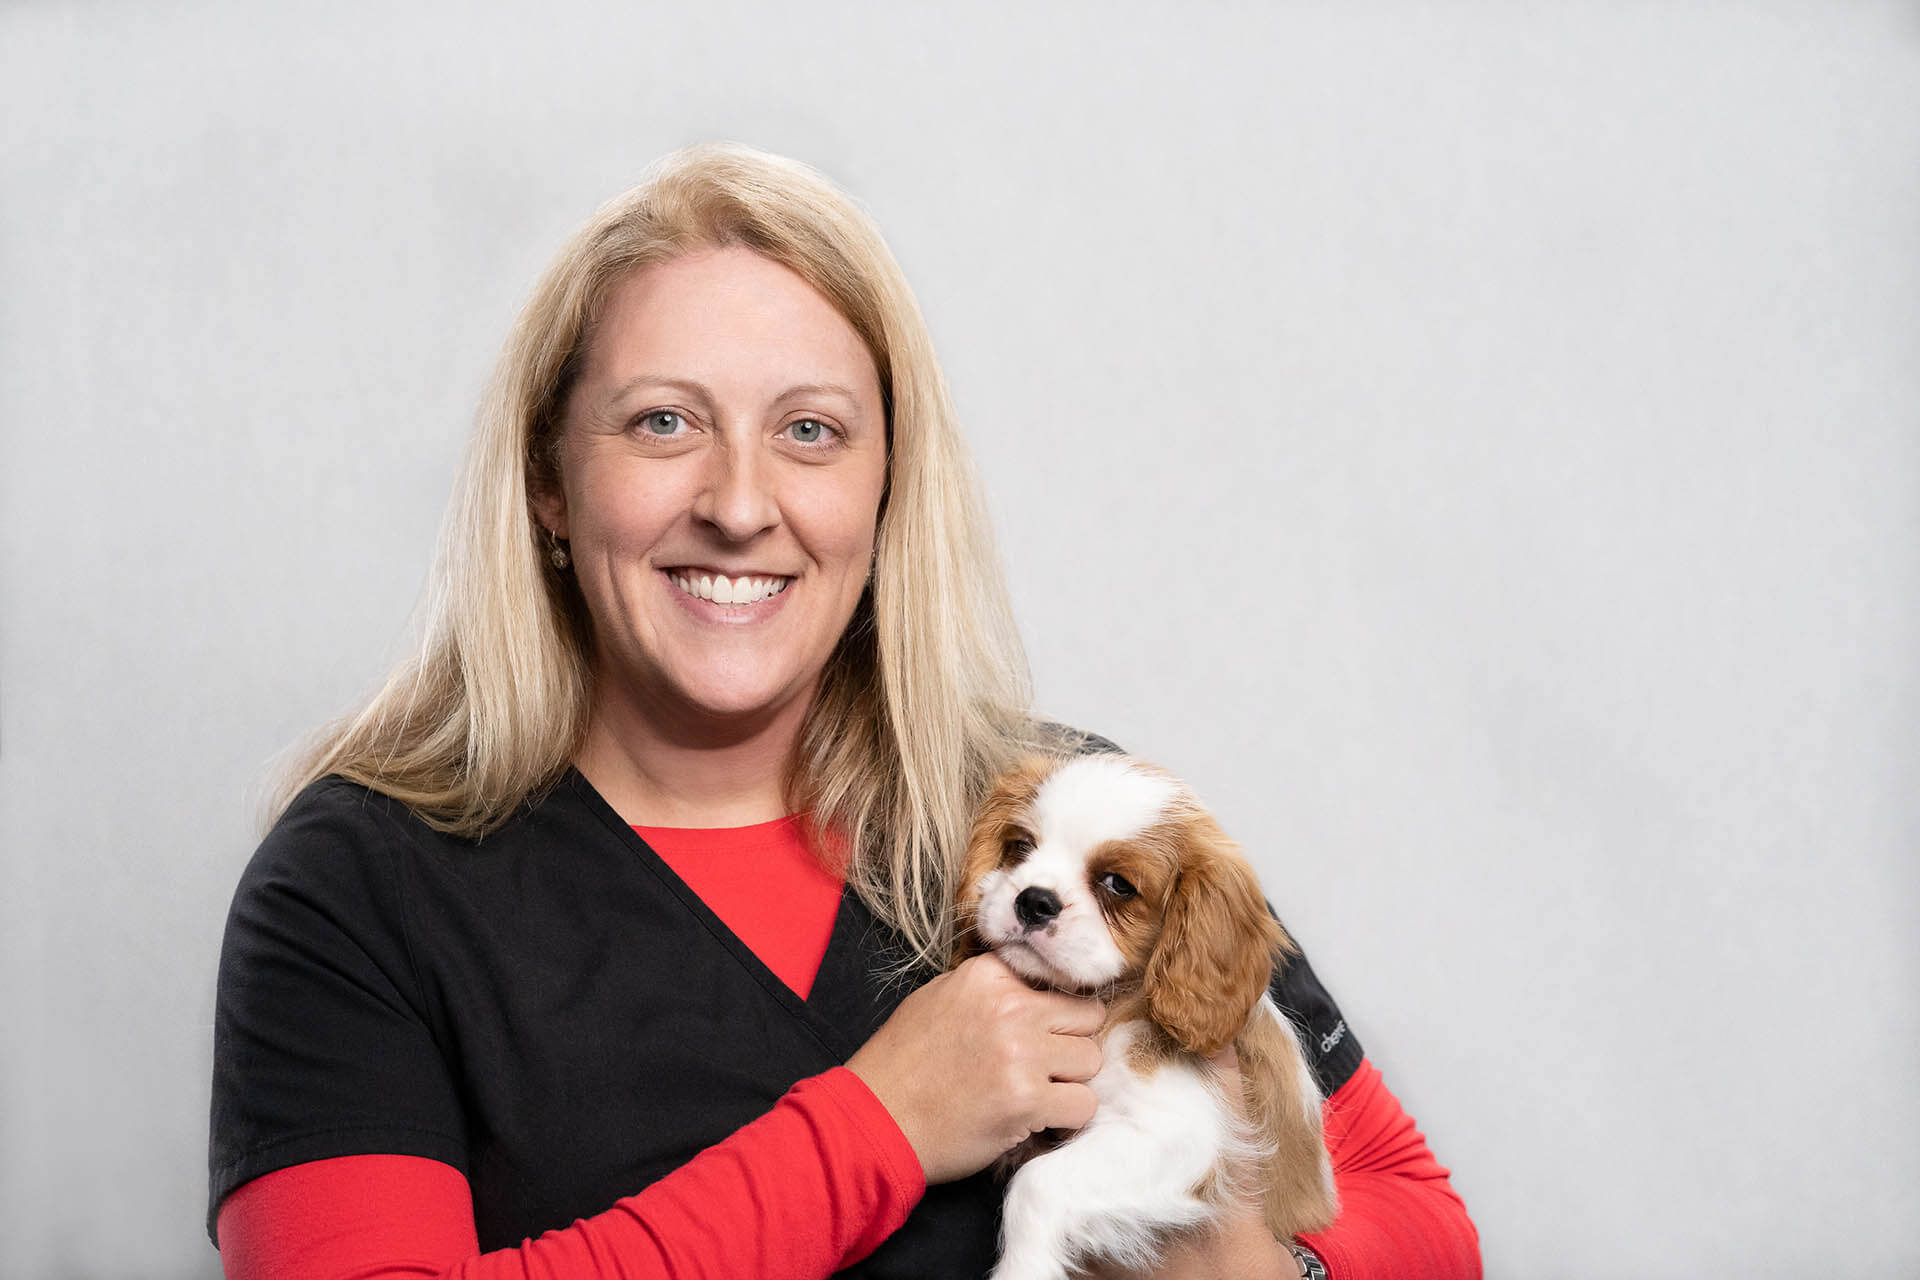 This is a picture of an employee of Mobile Pet Vax holding a puppy